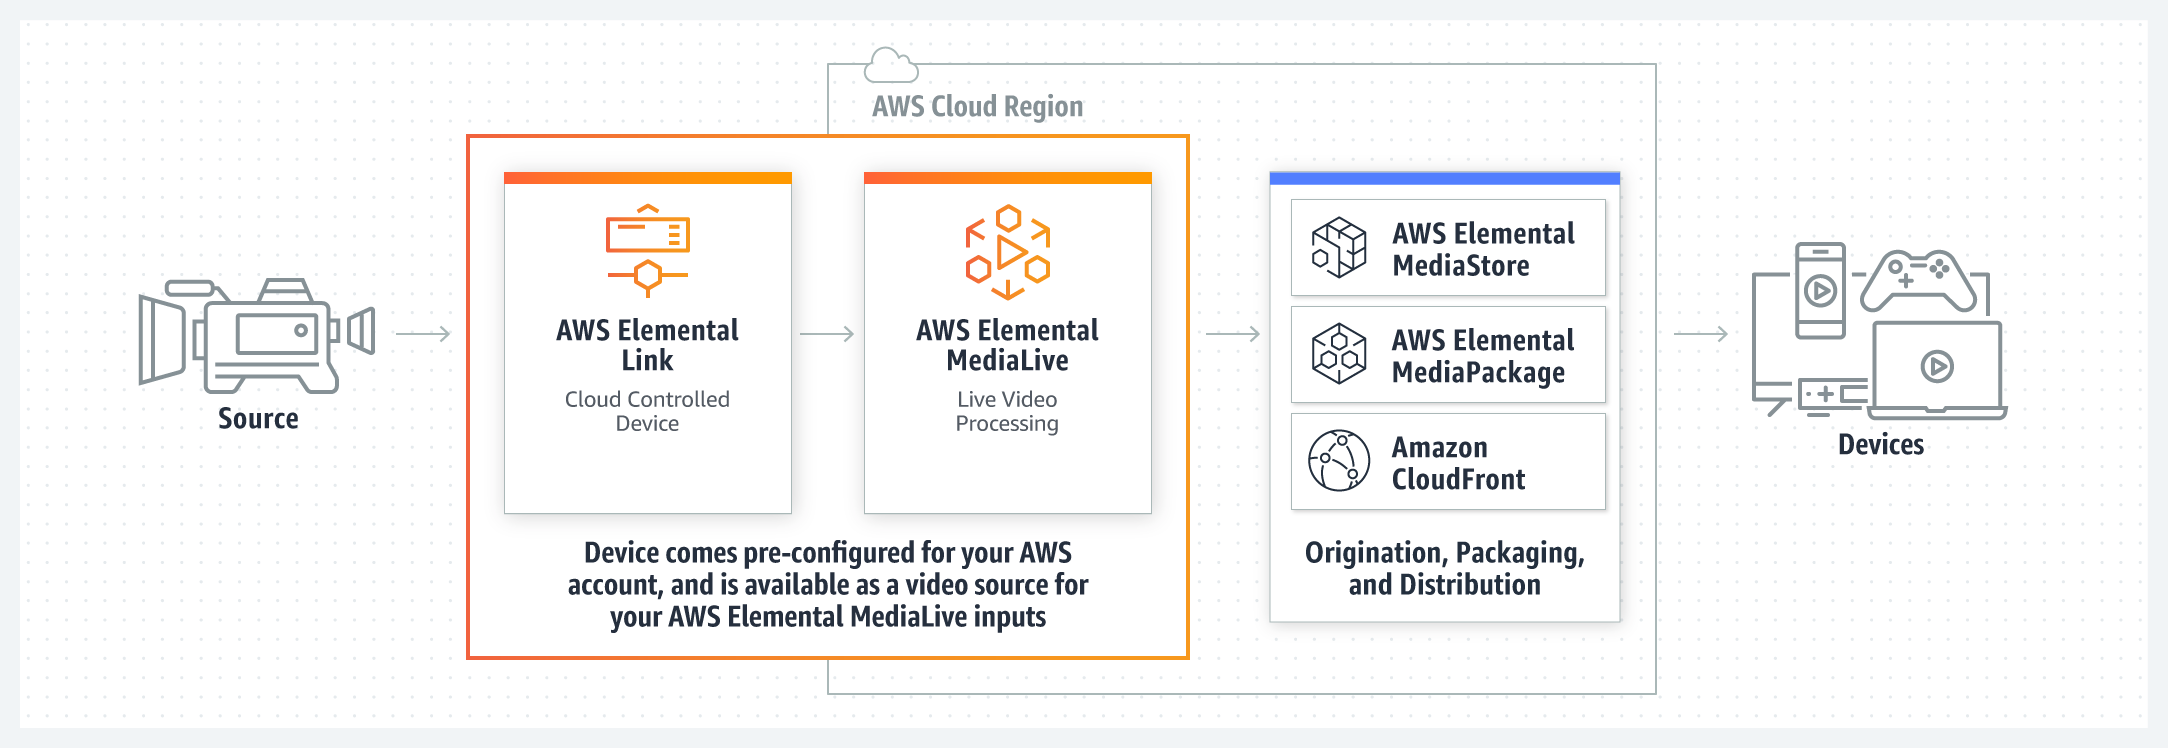 product-page-diagram_AWS_Elemental_r11_AWS_ELEMENTAL_LINK_@2x